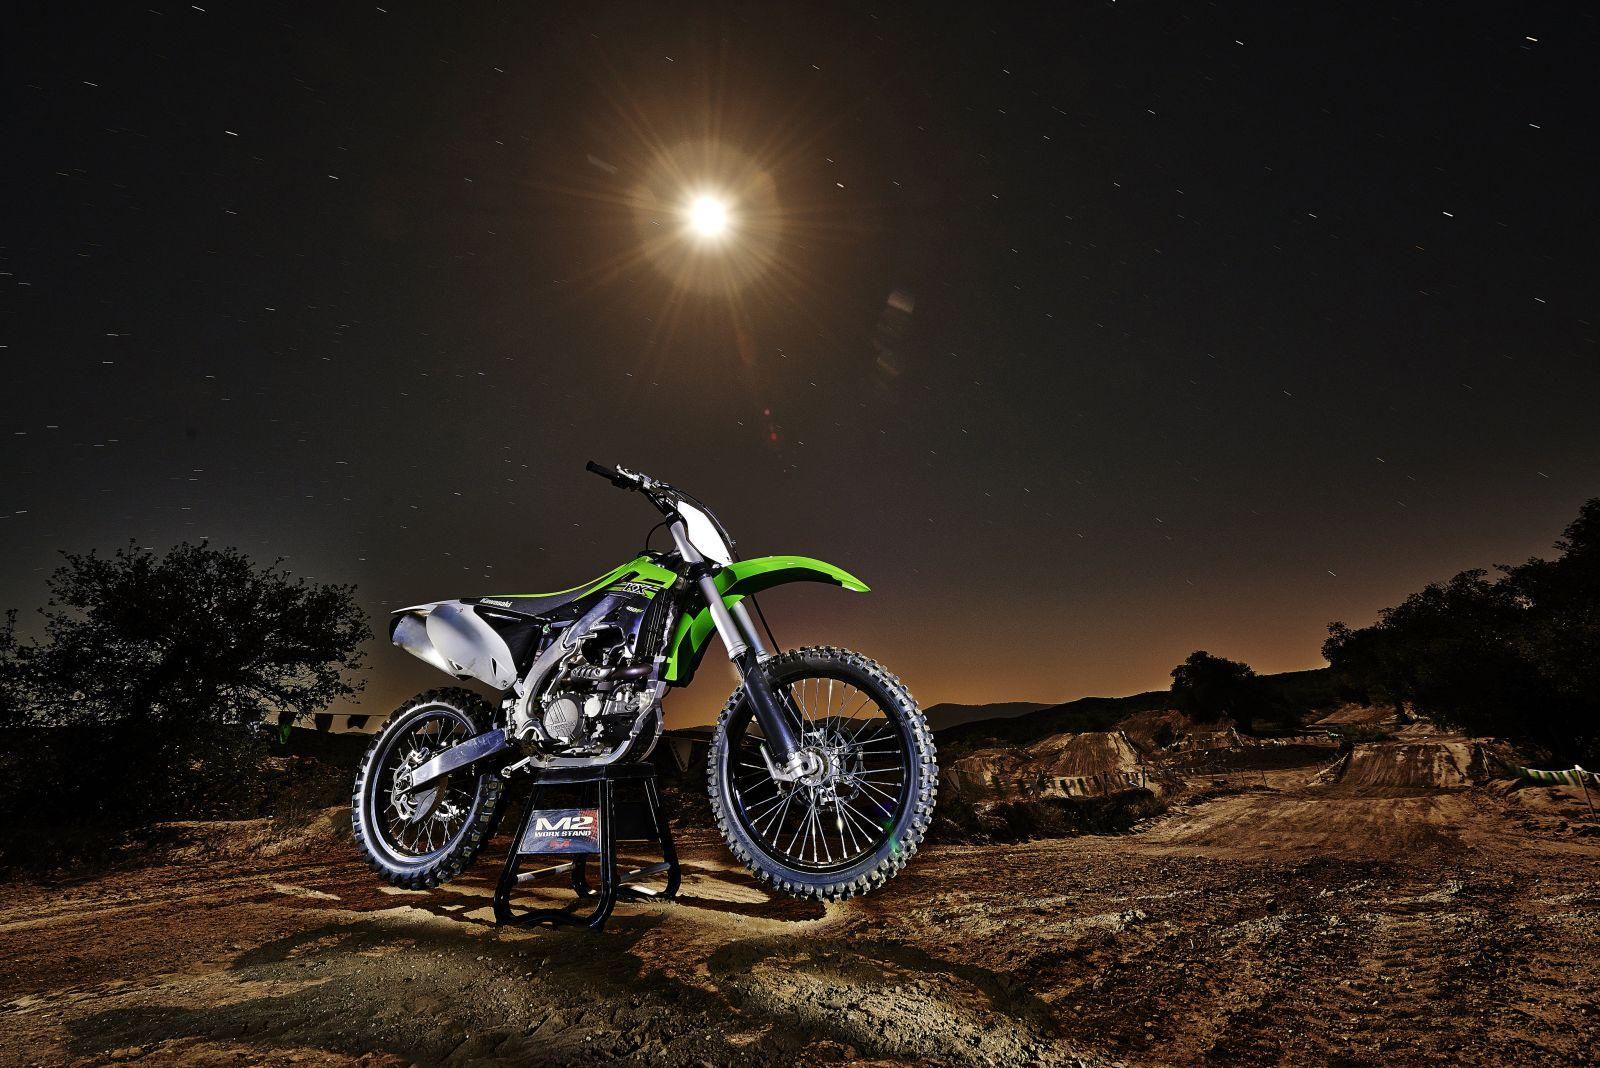 kawasaki kx450f 2015 motorrad fotos motorrad bilder. Black Bedroom Furniture Sets. Home Design Ideas